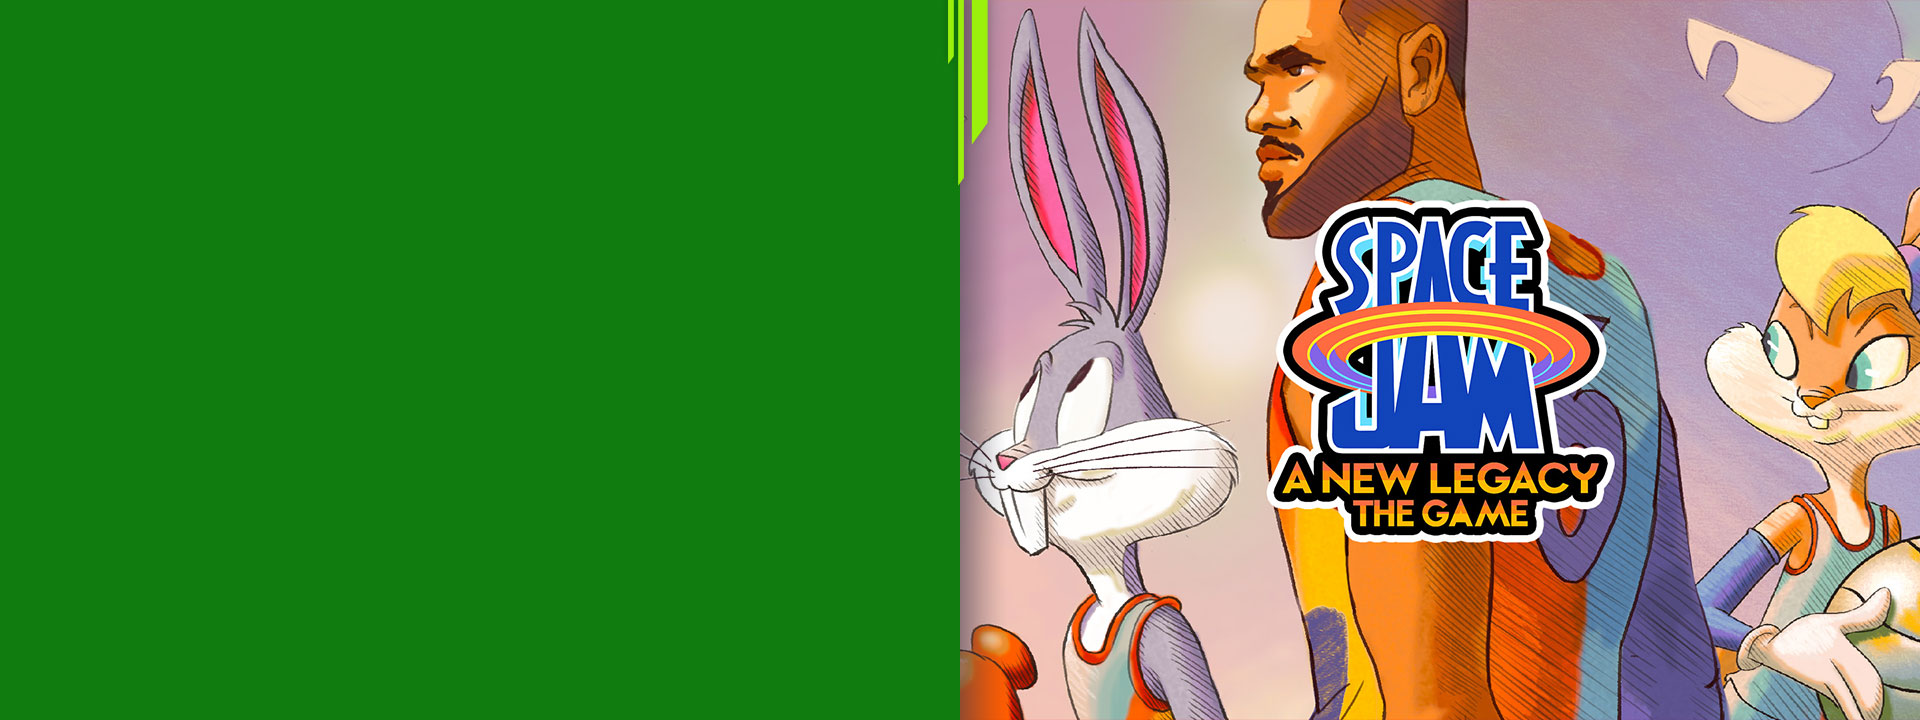 Space Jam: a new legacy awaits, pixel art of Lebron James, bugs and Lola bunny